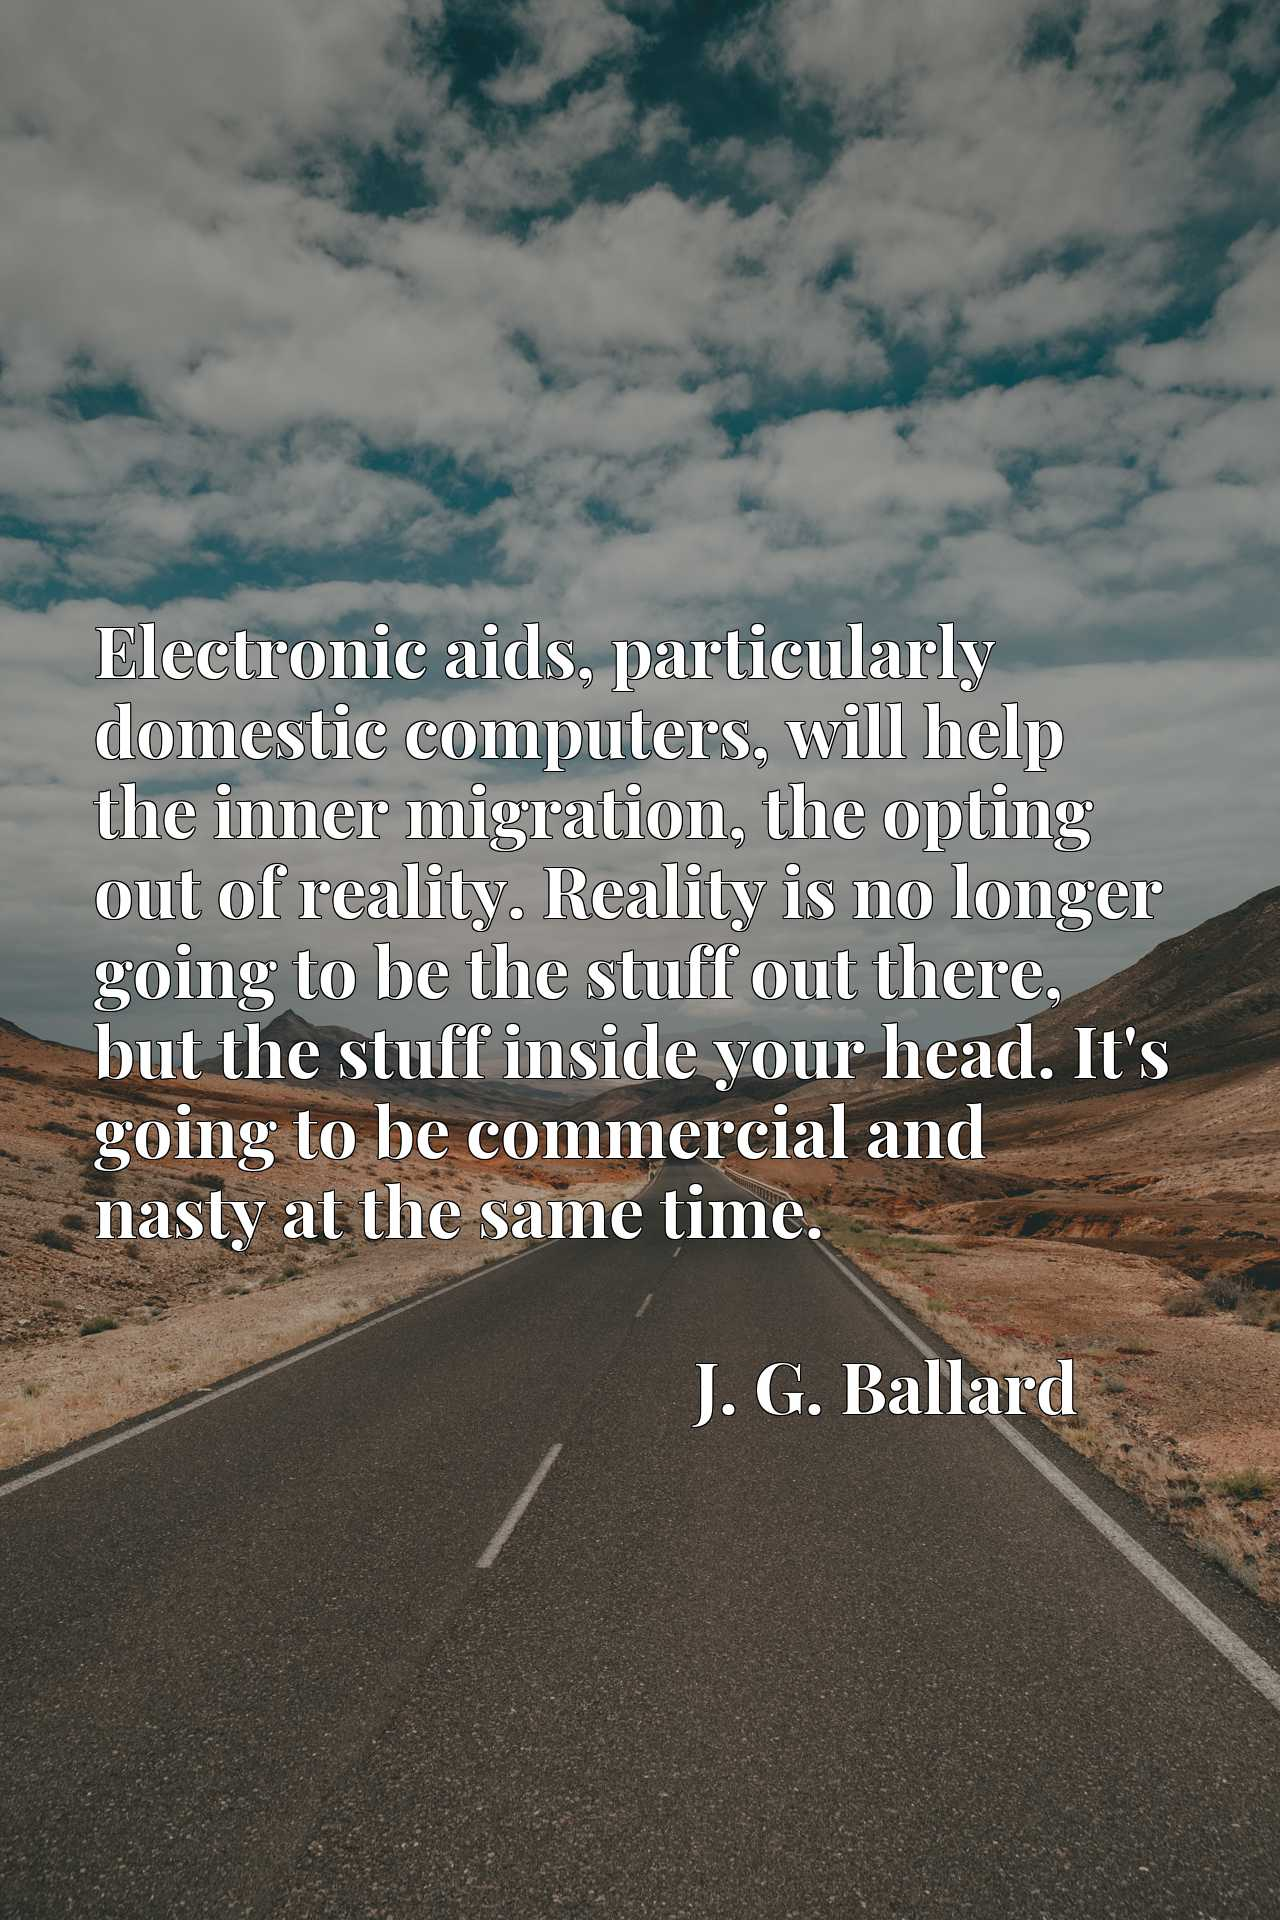 Electronic aids, particularly domestic computers, will help the inner migration, the opting out of reality. Reality is no longer going to be the stuff out there, but the stuff inside your head. It's going to be commercial and nasty at the same time.